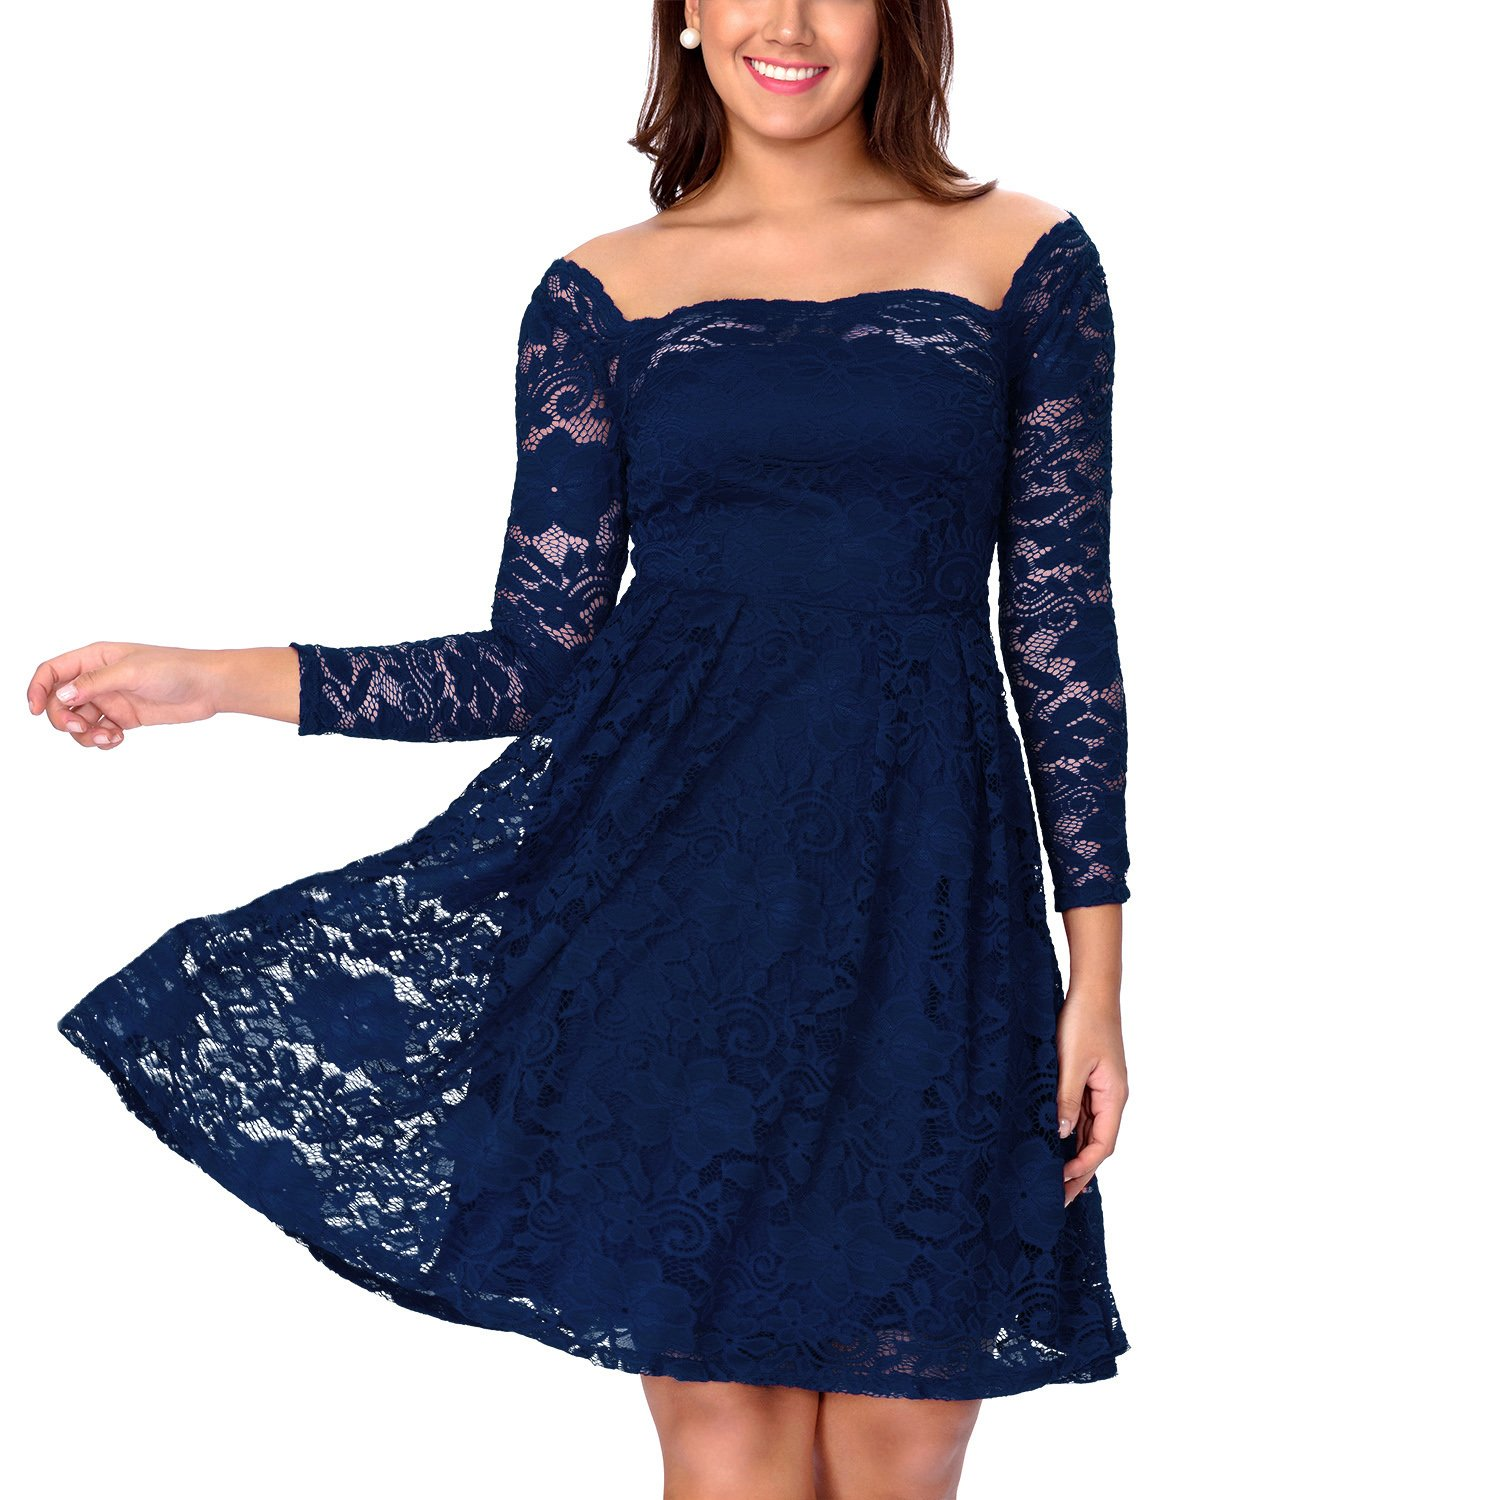 d3d7b05f481 One Sight Womens Off Shoulder Floral Lace Dress Long Sleeve Cocktail Formal  Swing Dress